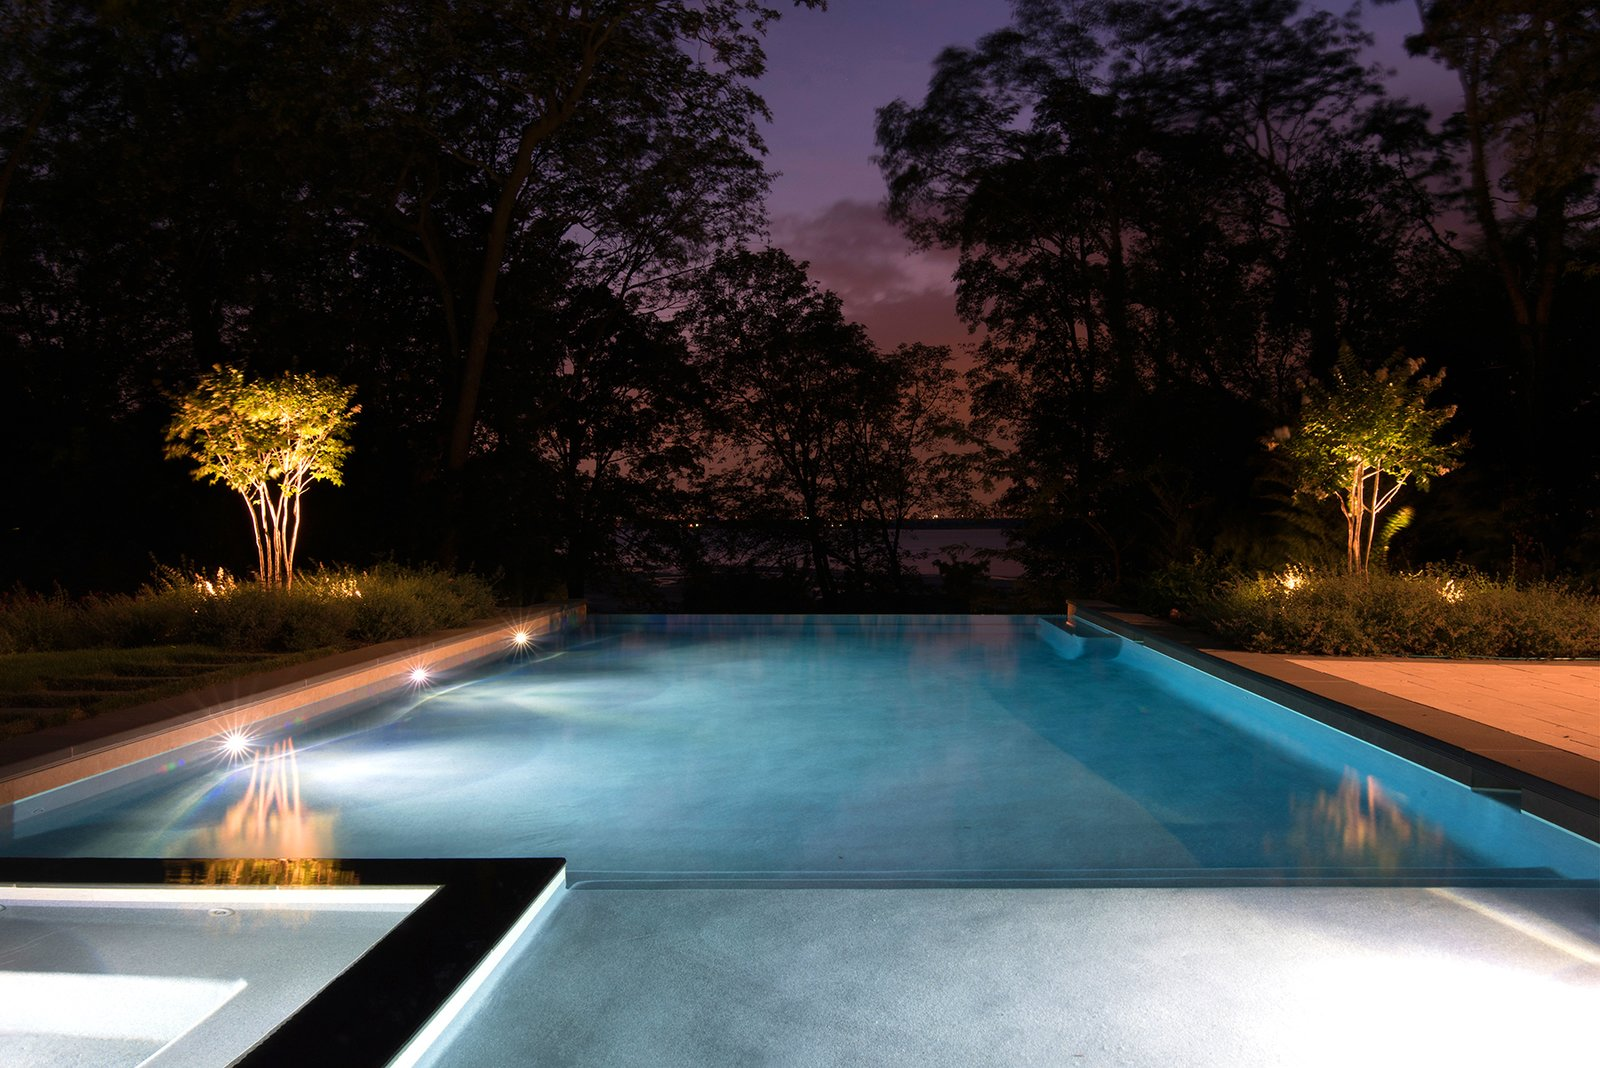 The pool, lighting, and landscape frame dramatic views of sunsets over the Long Island Sound.